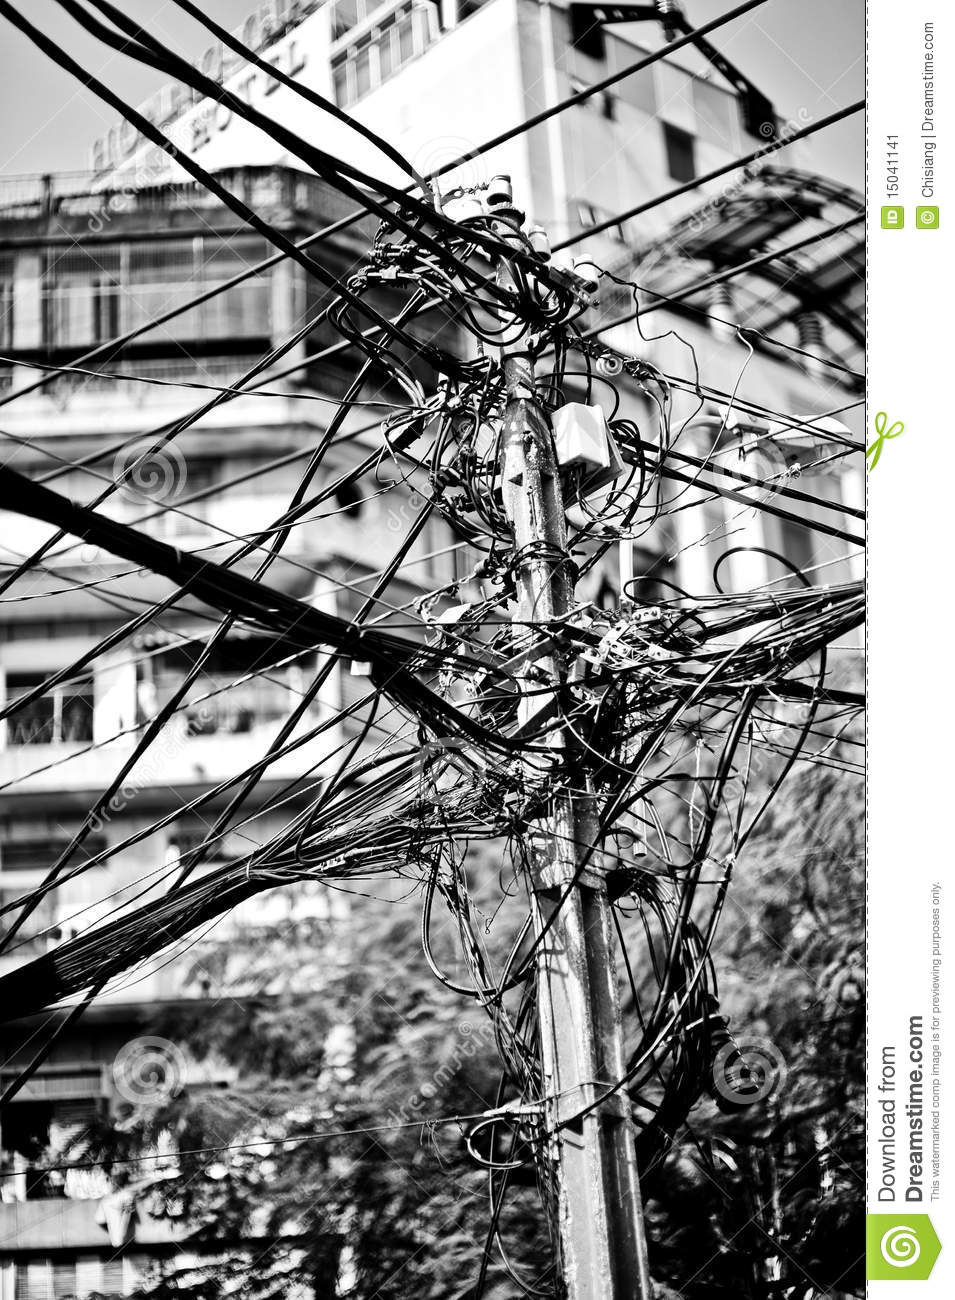 hight resolution of messy telephone cables